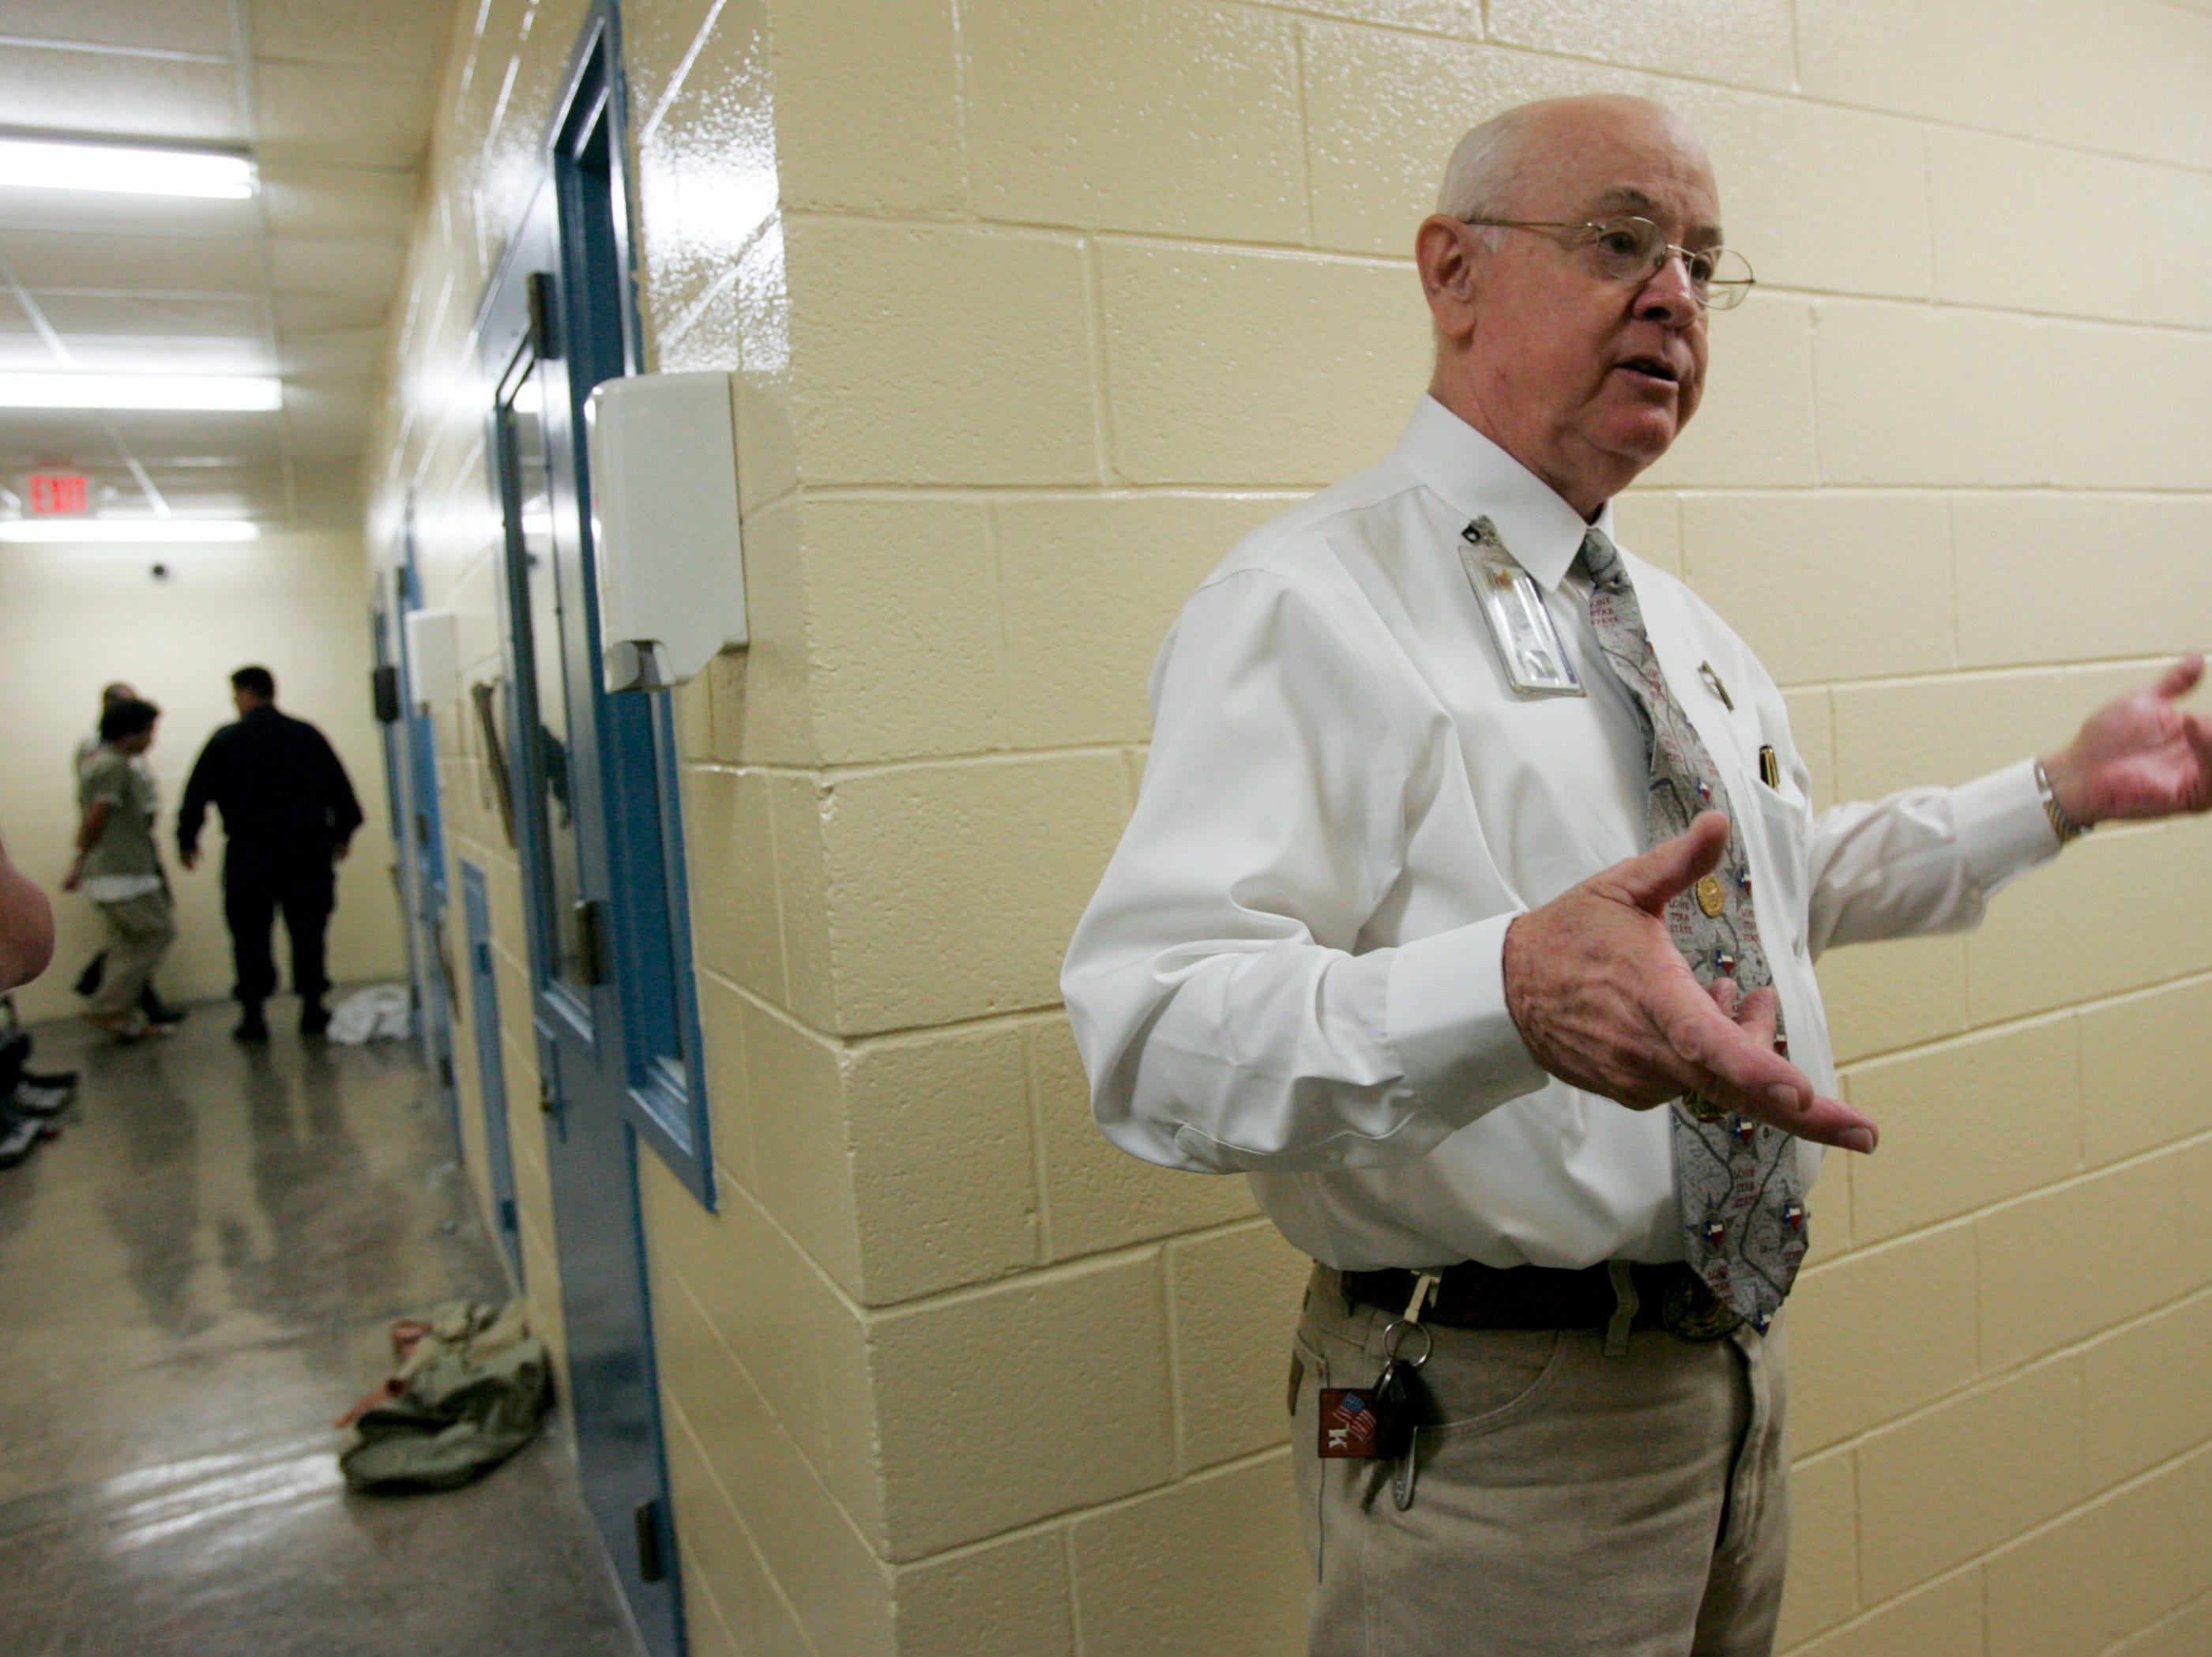 Sheriff Jim Kaelin gives a tour Thursday, Nov. 12, 2009 at the Nueces County Jail in Corpus Christi.